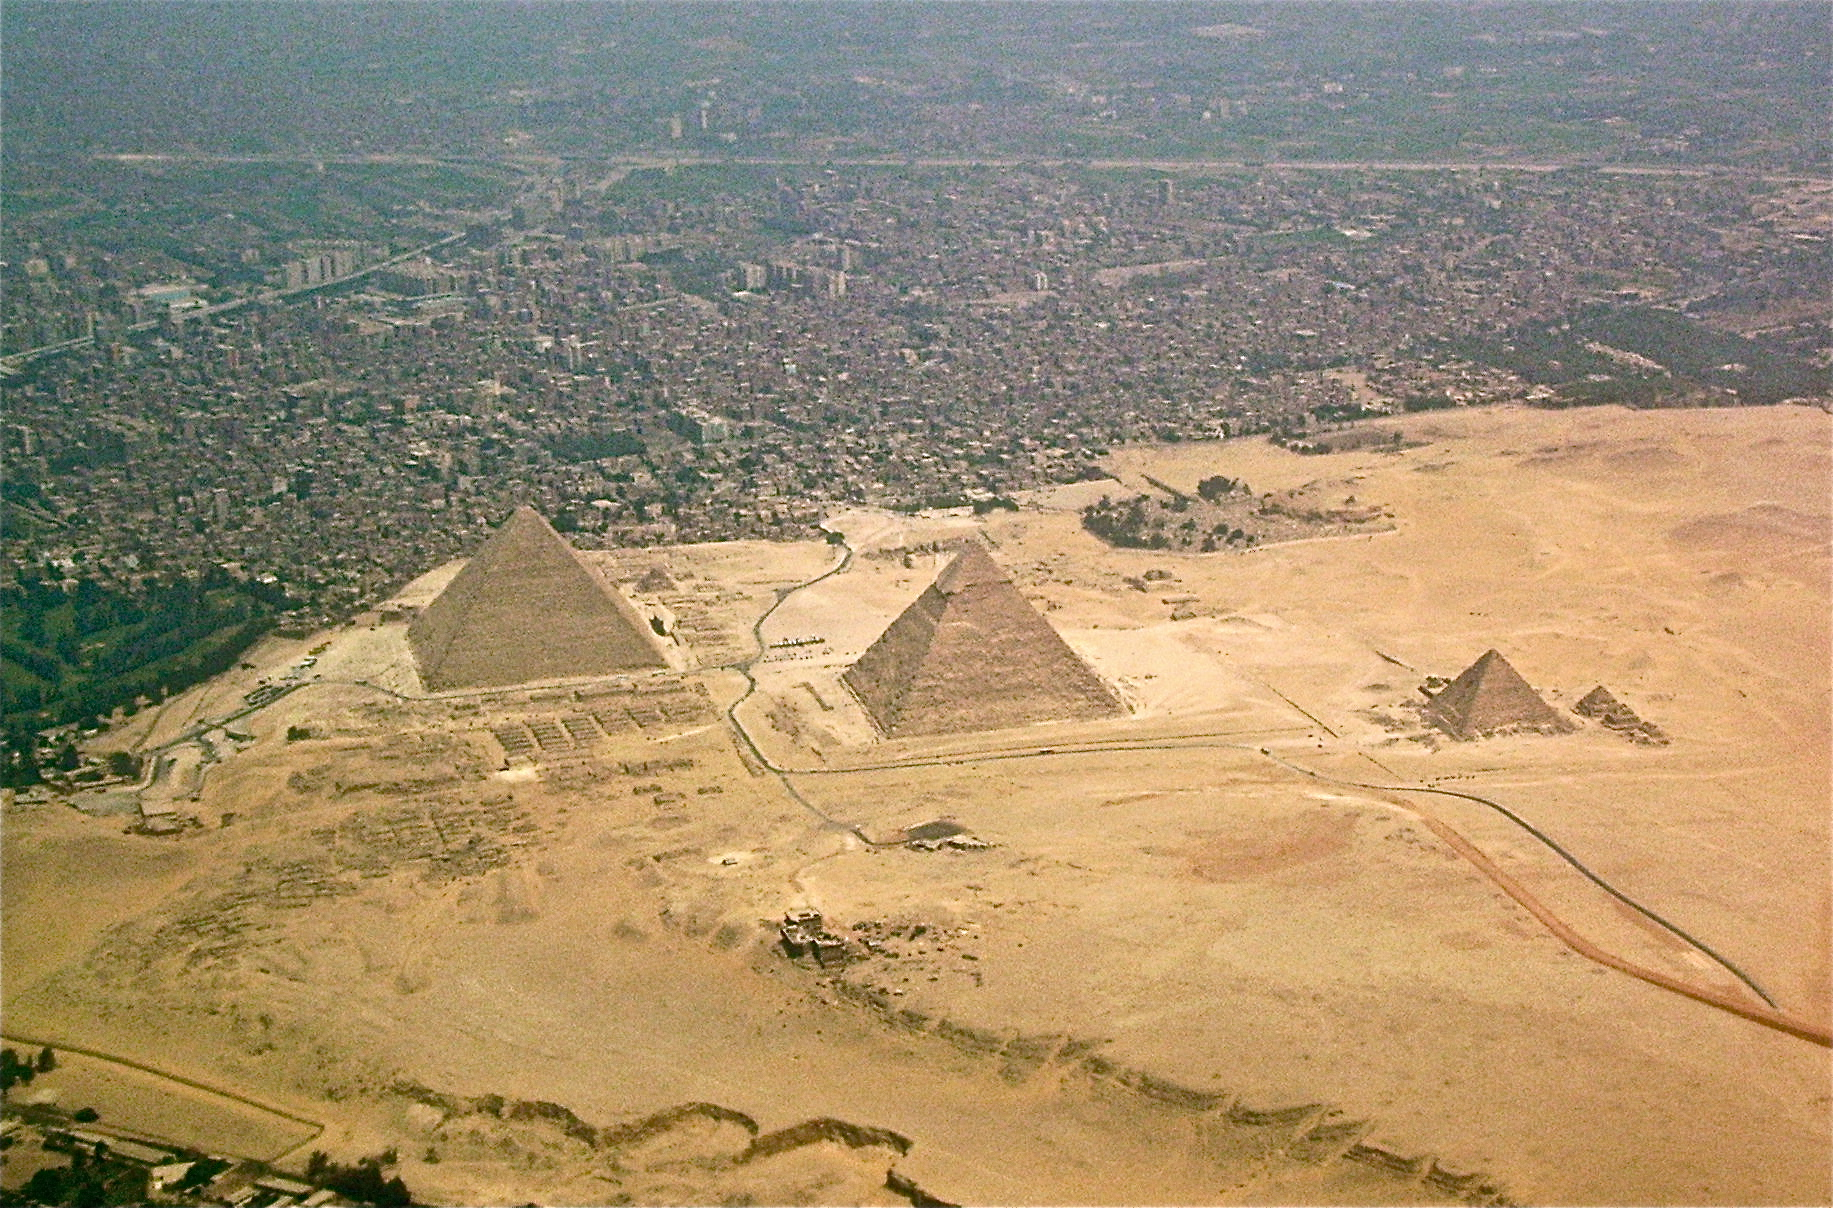 Giza Egypt  City pictures : had no idea the pyramids were this close to the City : pics